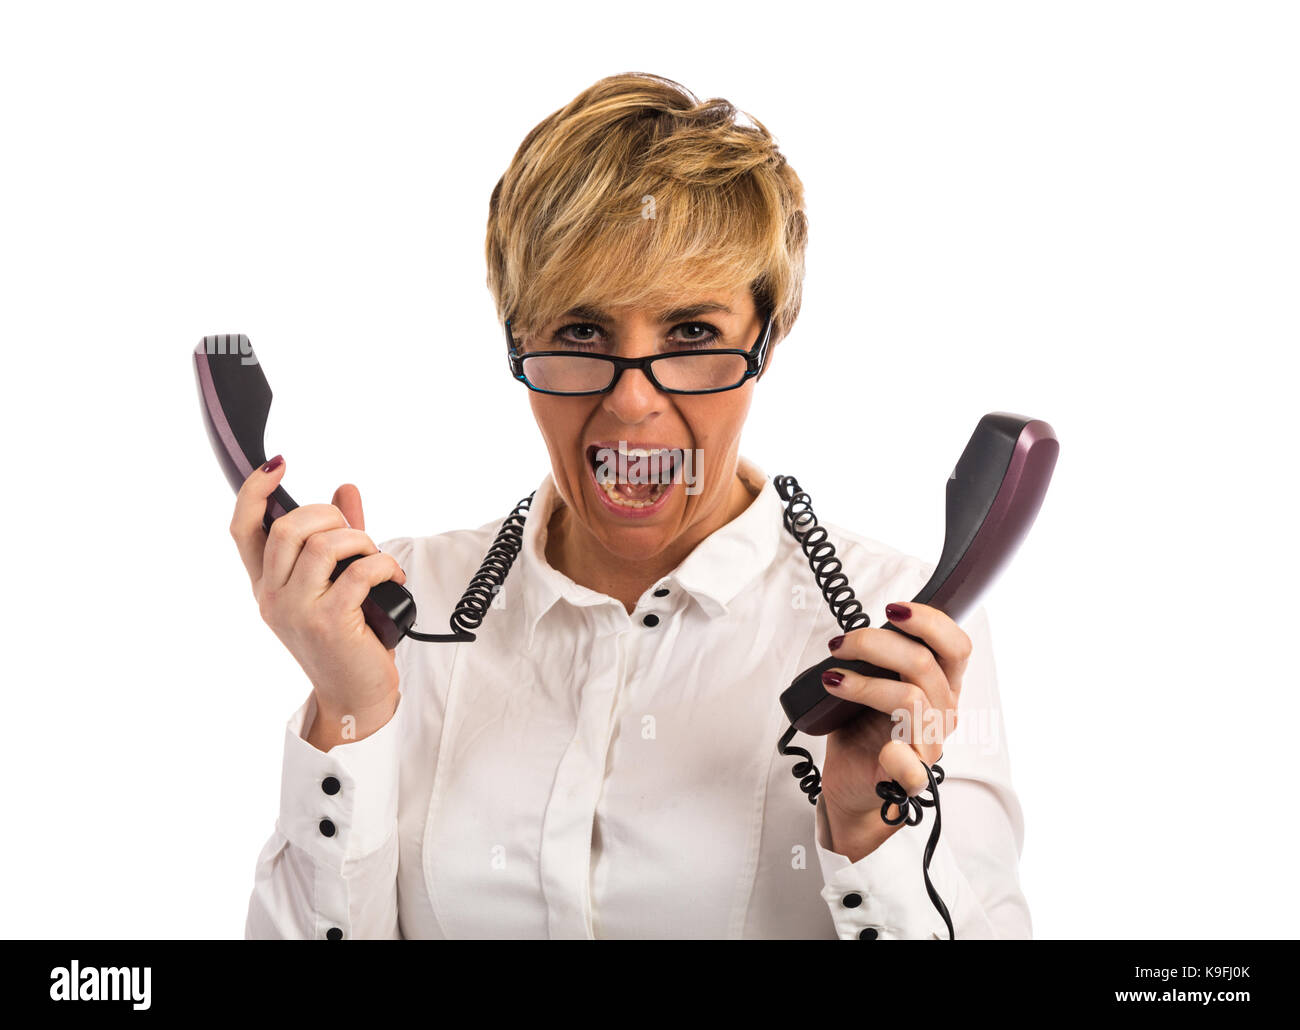 An overworked business woman struggles with too many phones - Stock Image